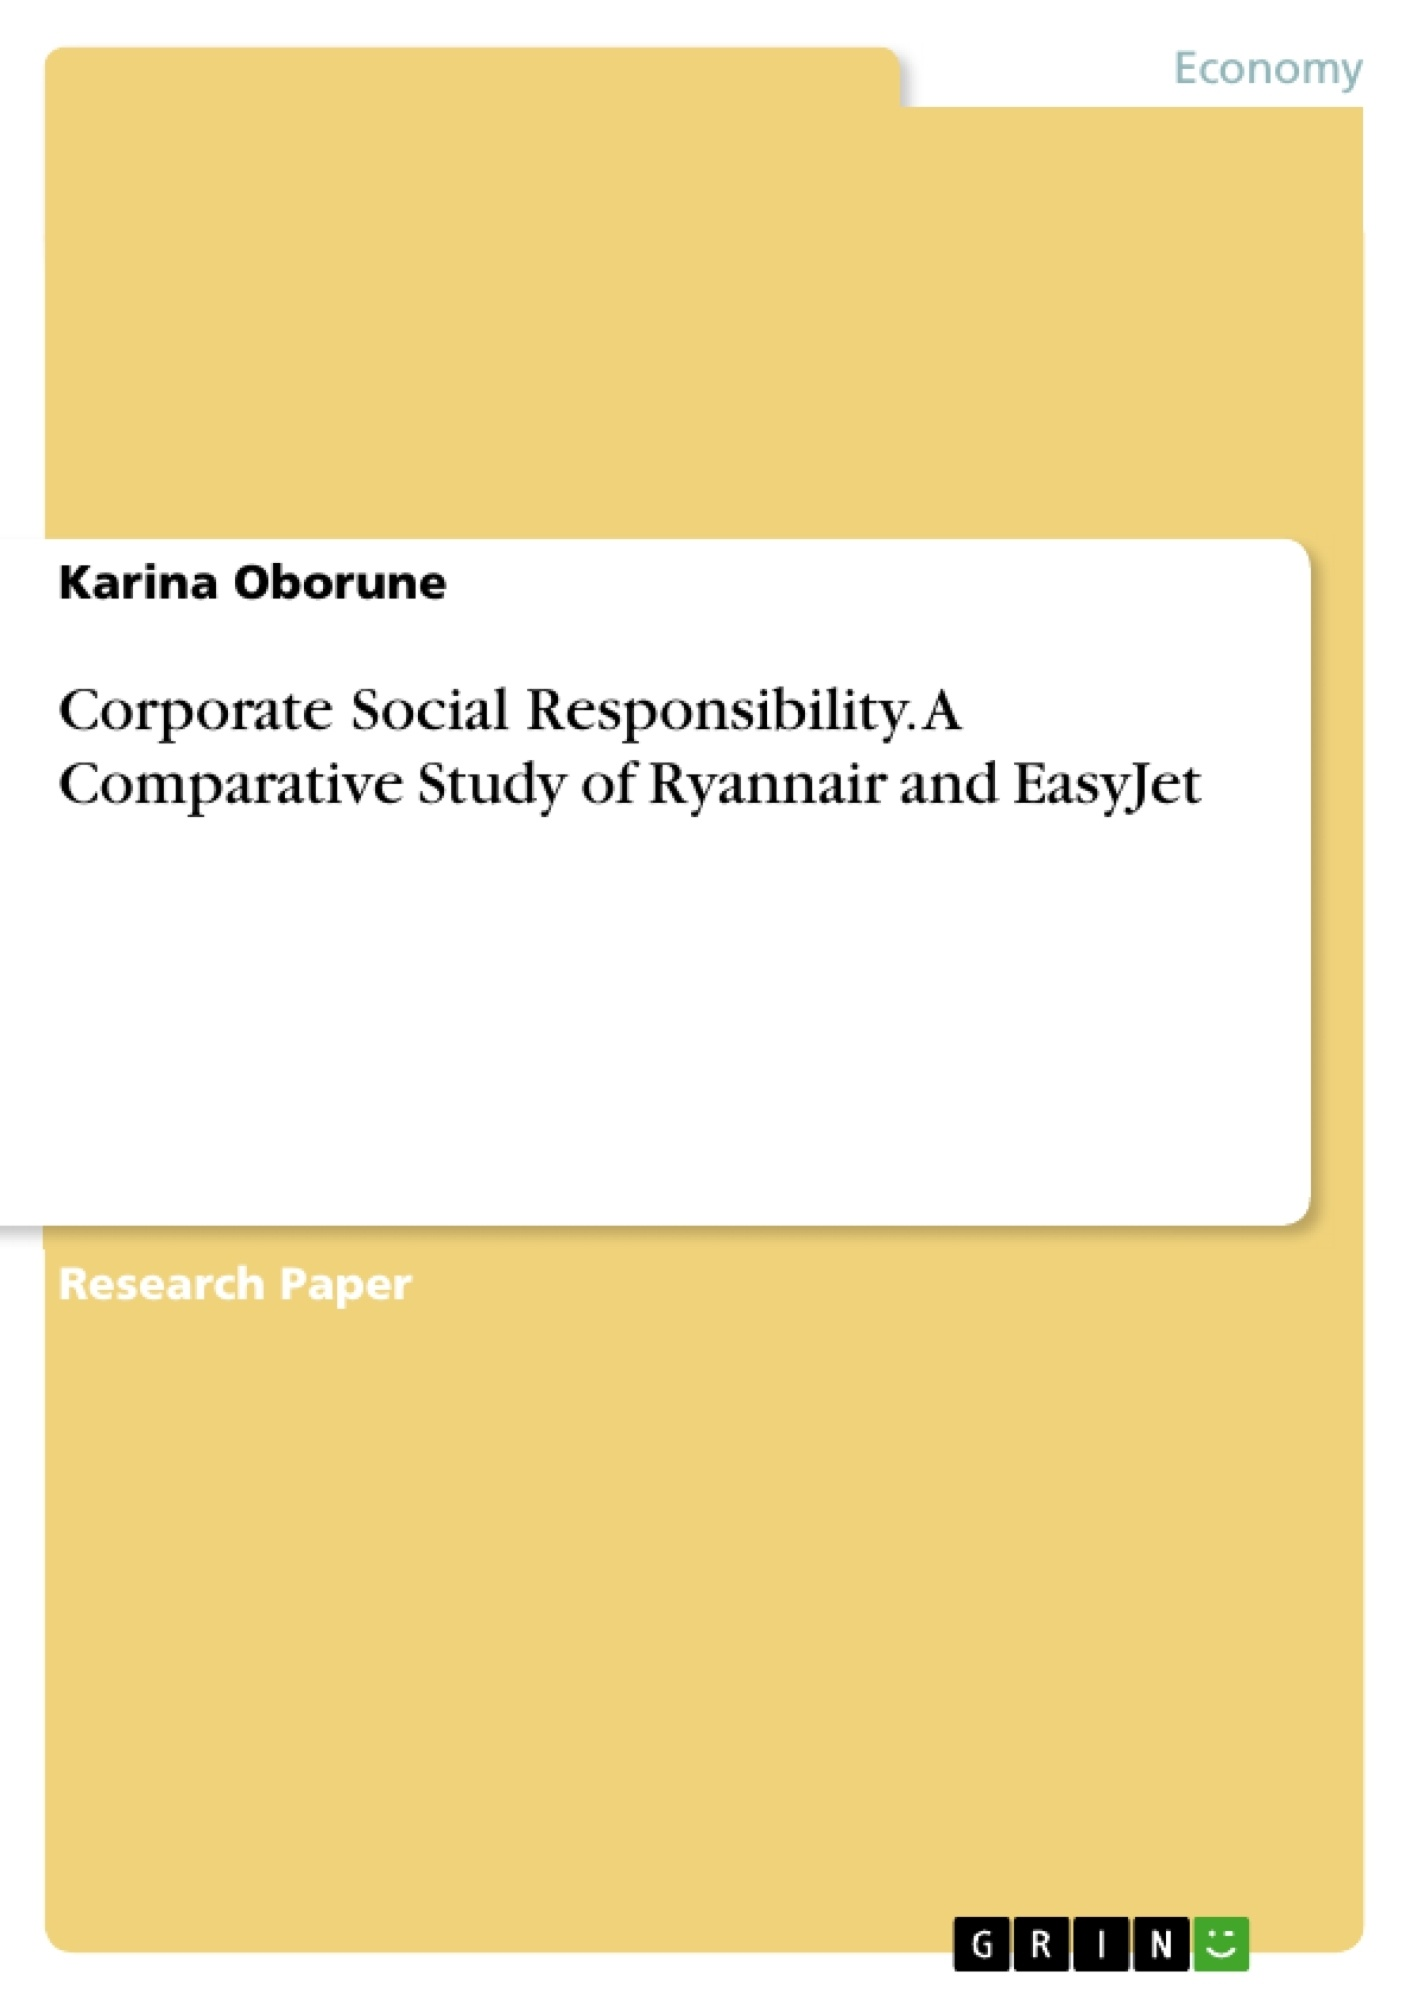 Title: Corporate Social Responsibility. A Comparative Study of Ryannair and EasyJet